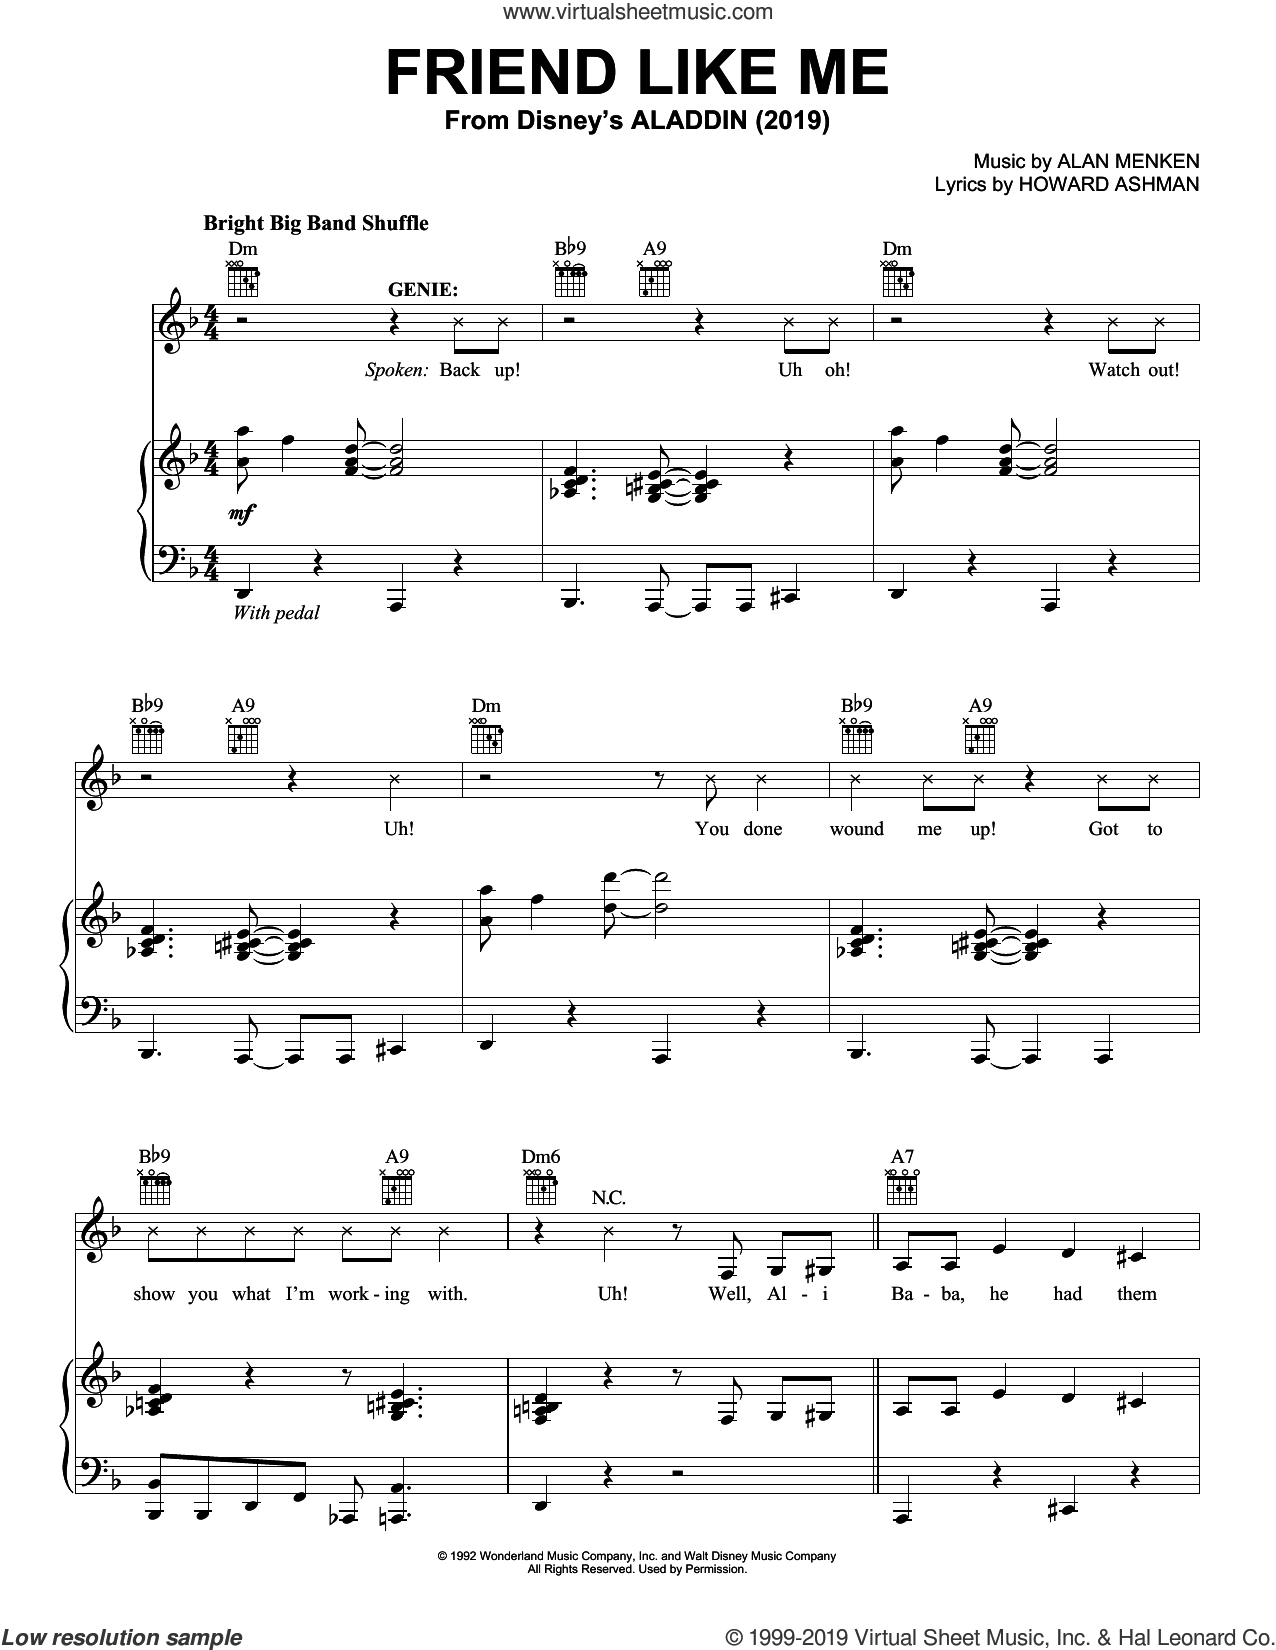 Friend Like Me (from Disney's Aladdin) sheet music for voice, piano or guitar by Will Smith, Alan Menken and Howard Ashman, intermediate skill level